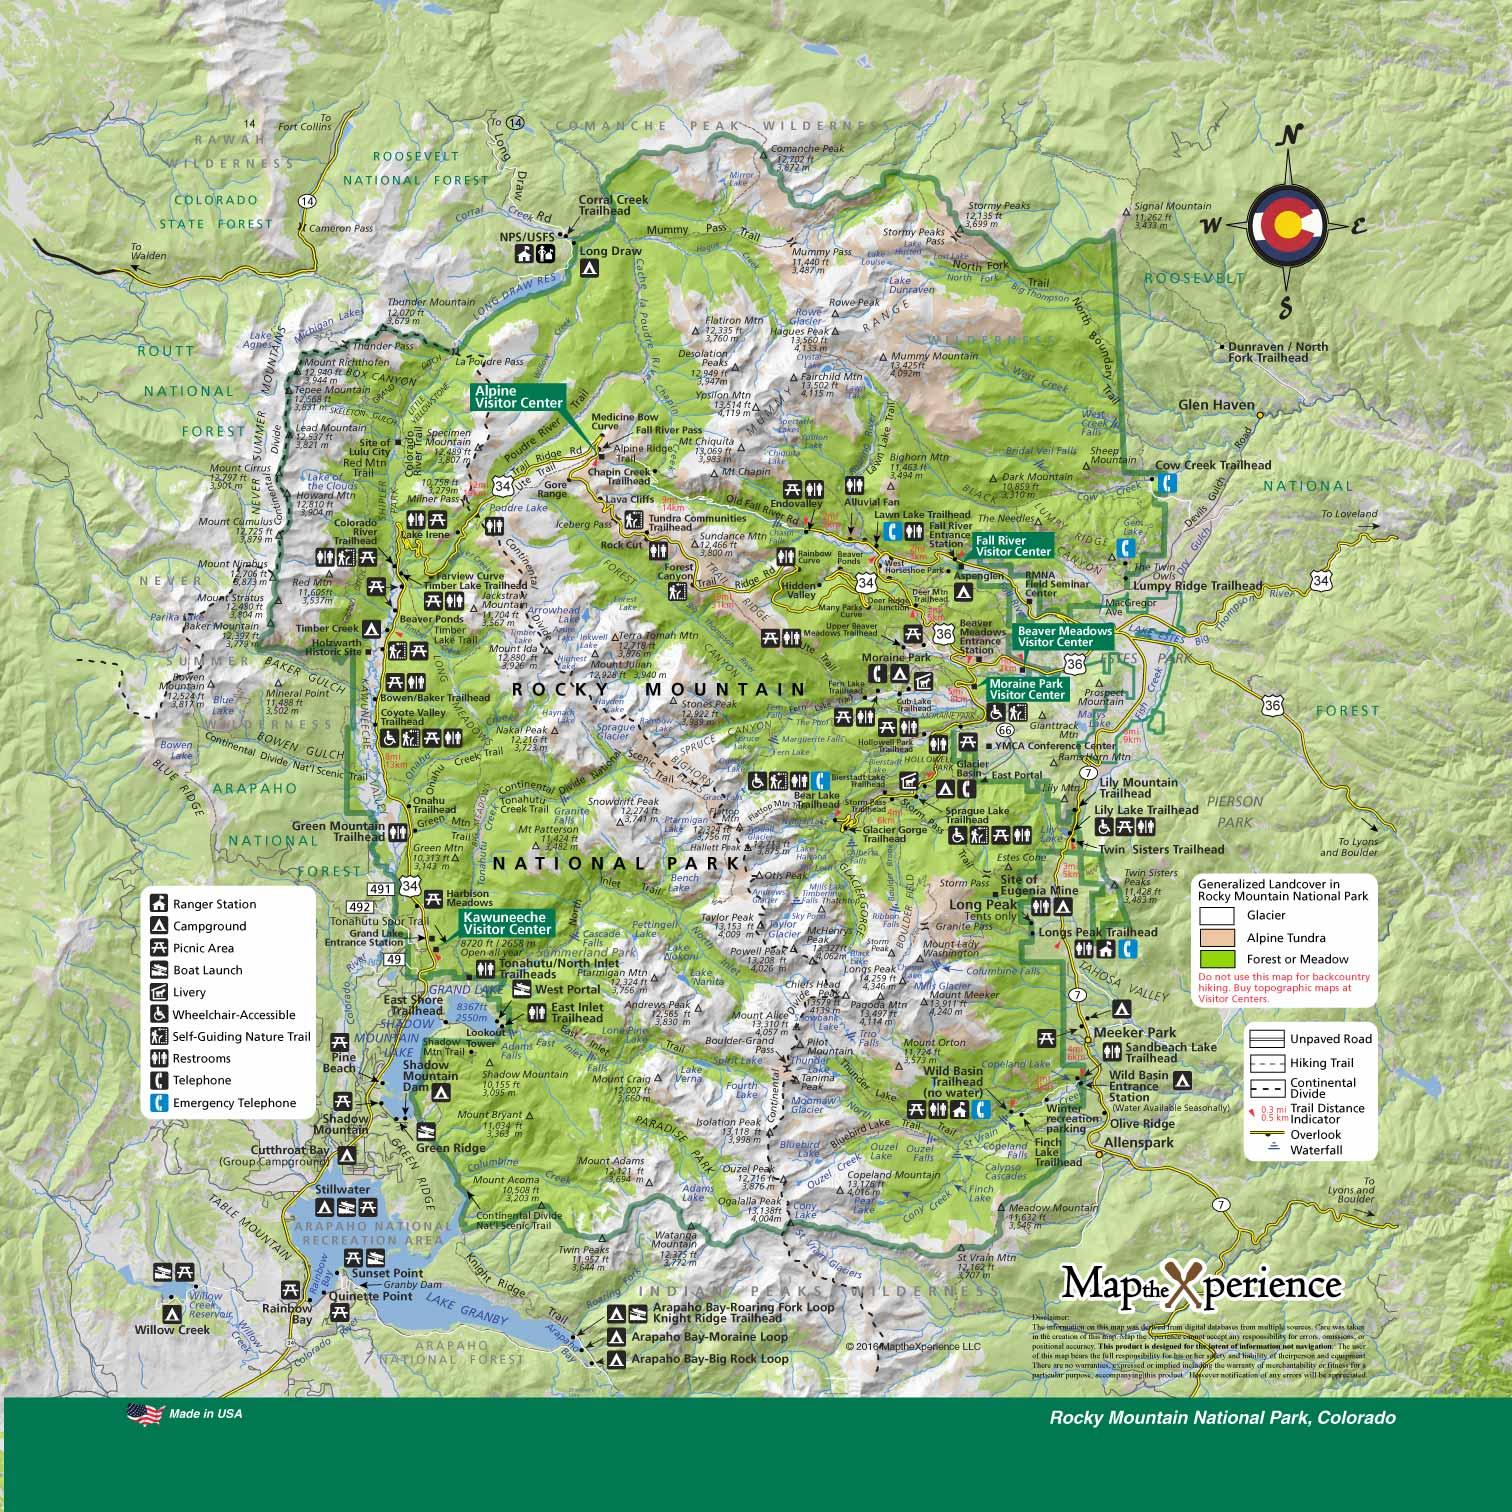 Rocky Mountain National Park Colorado Map - Map the Xperience ...